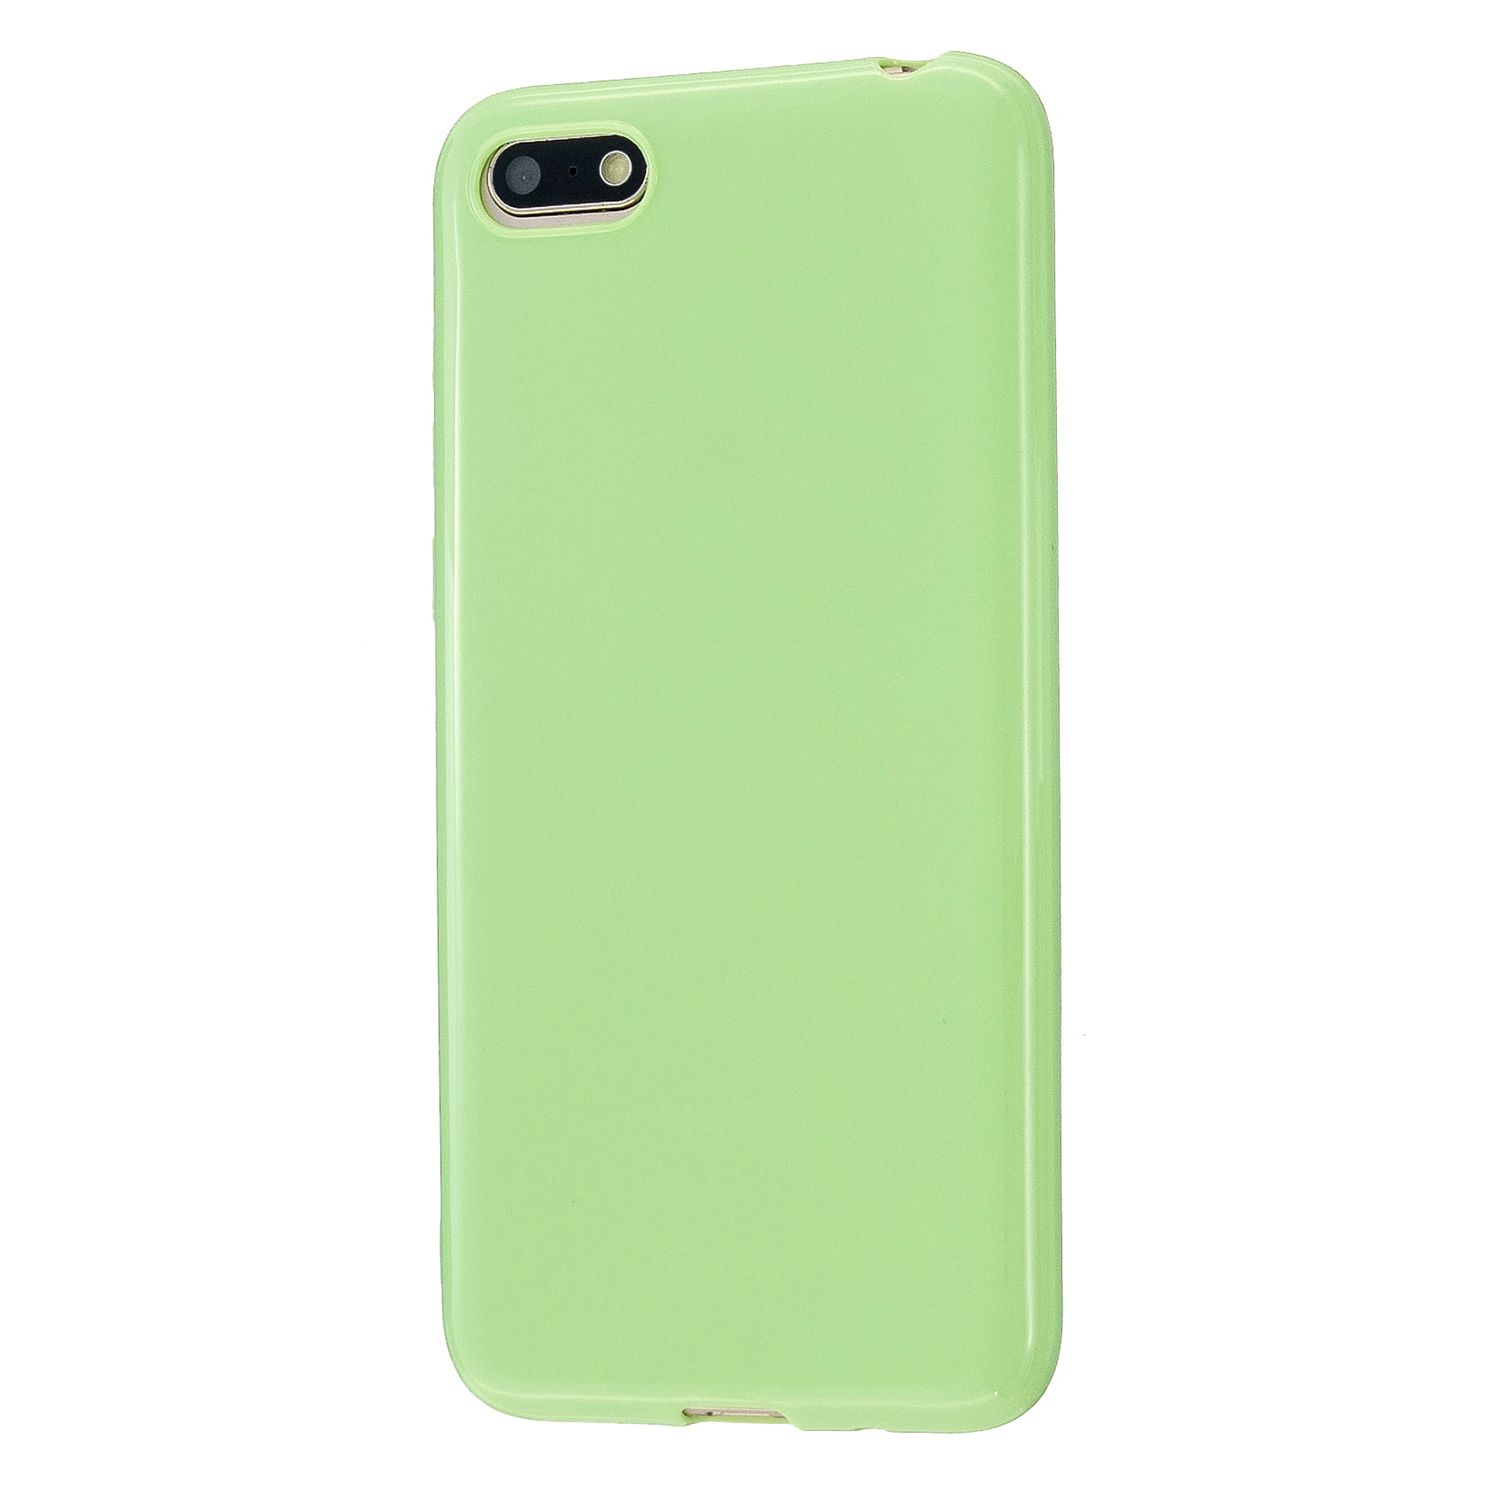 For HUAWEI Y5 2018/2019 TPU Phone Case Simple Profile Delicate Finish Cellphone Cover Full Body Protection Fluorescent green